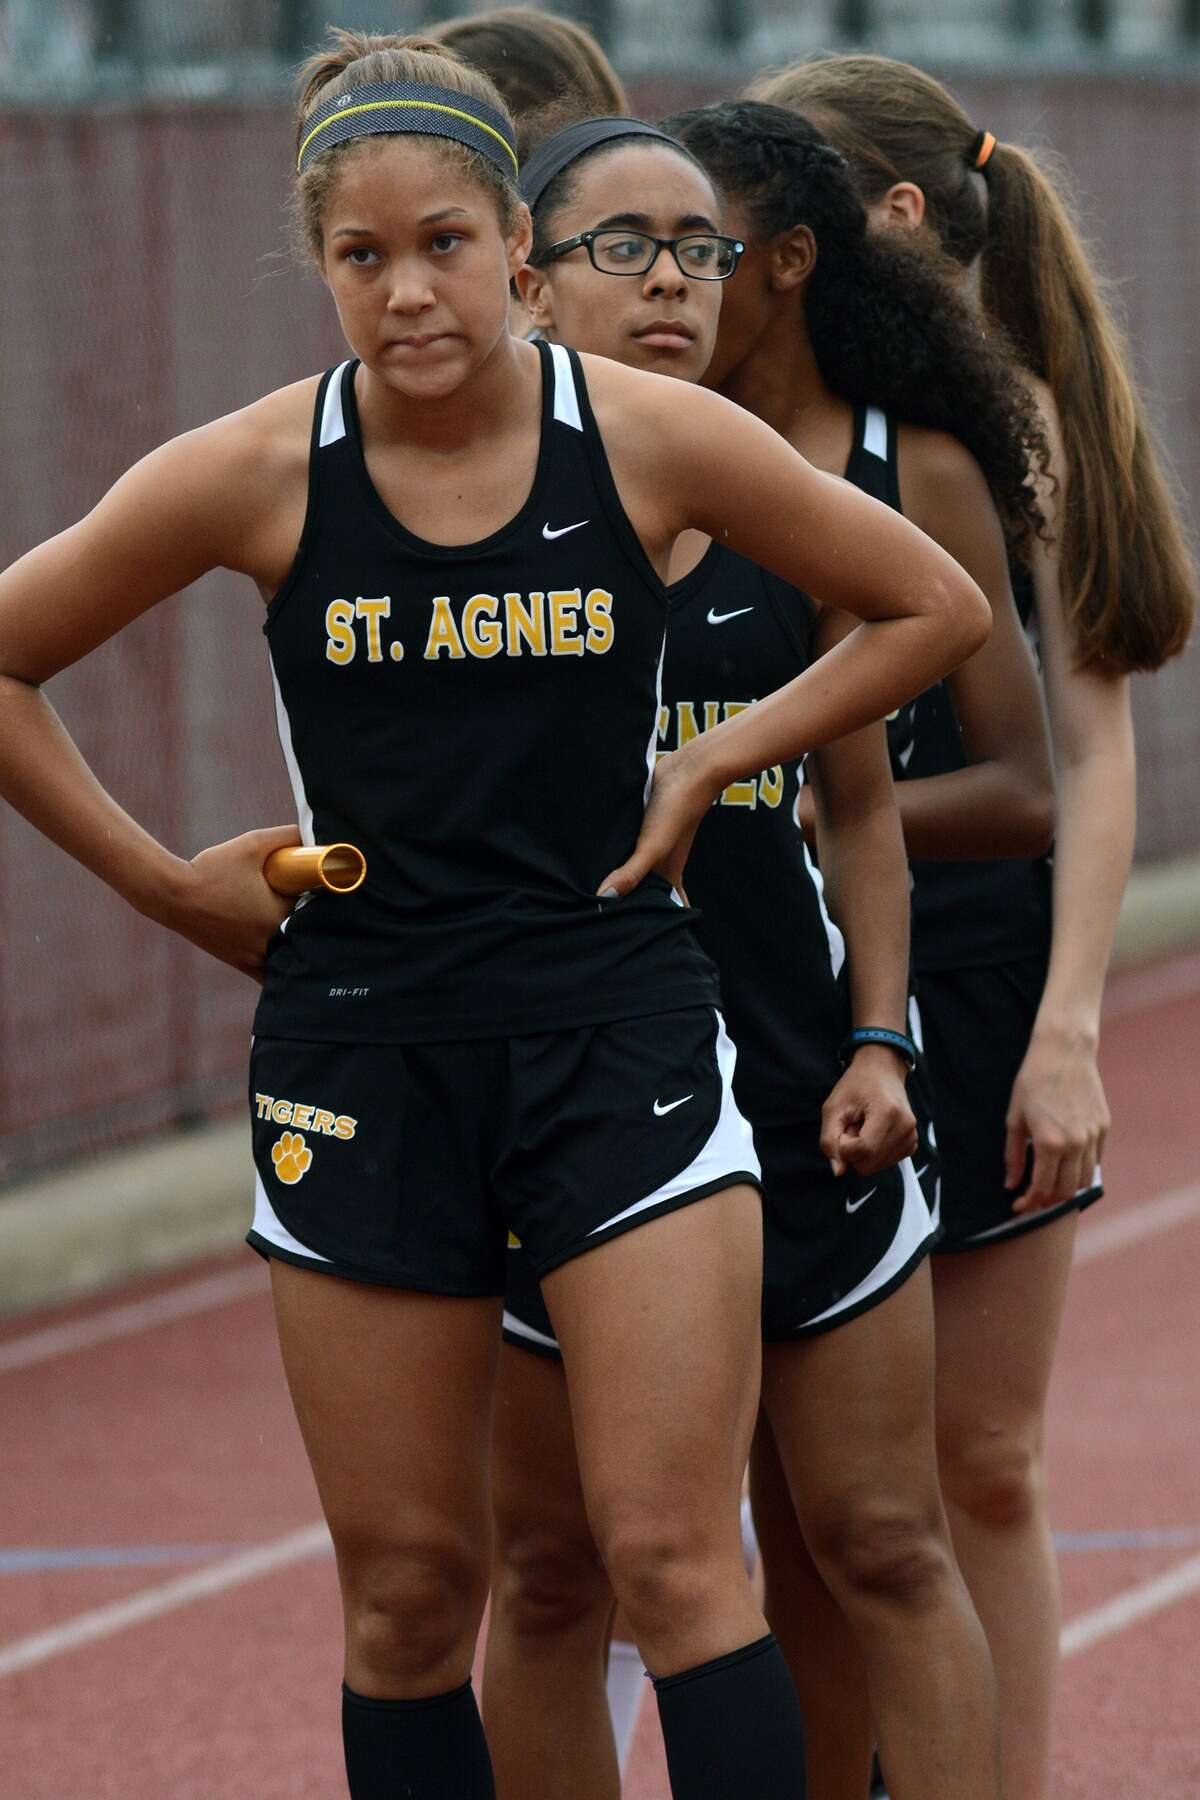 The St. Agnes Girls 4x400 Meter Relay team. including freshman Cristen Harrison, from left, sophomore Lauren Curran, sophomore Lauren Lowe, and freshman Meghan Rotter wait for the start of their event during the 2015 TAPPS 3-5A District Track Meet at St. Thomas High School on Wednesday, April 22, 2015.